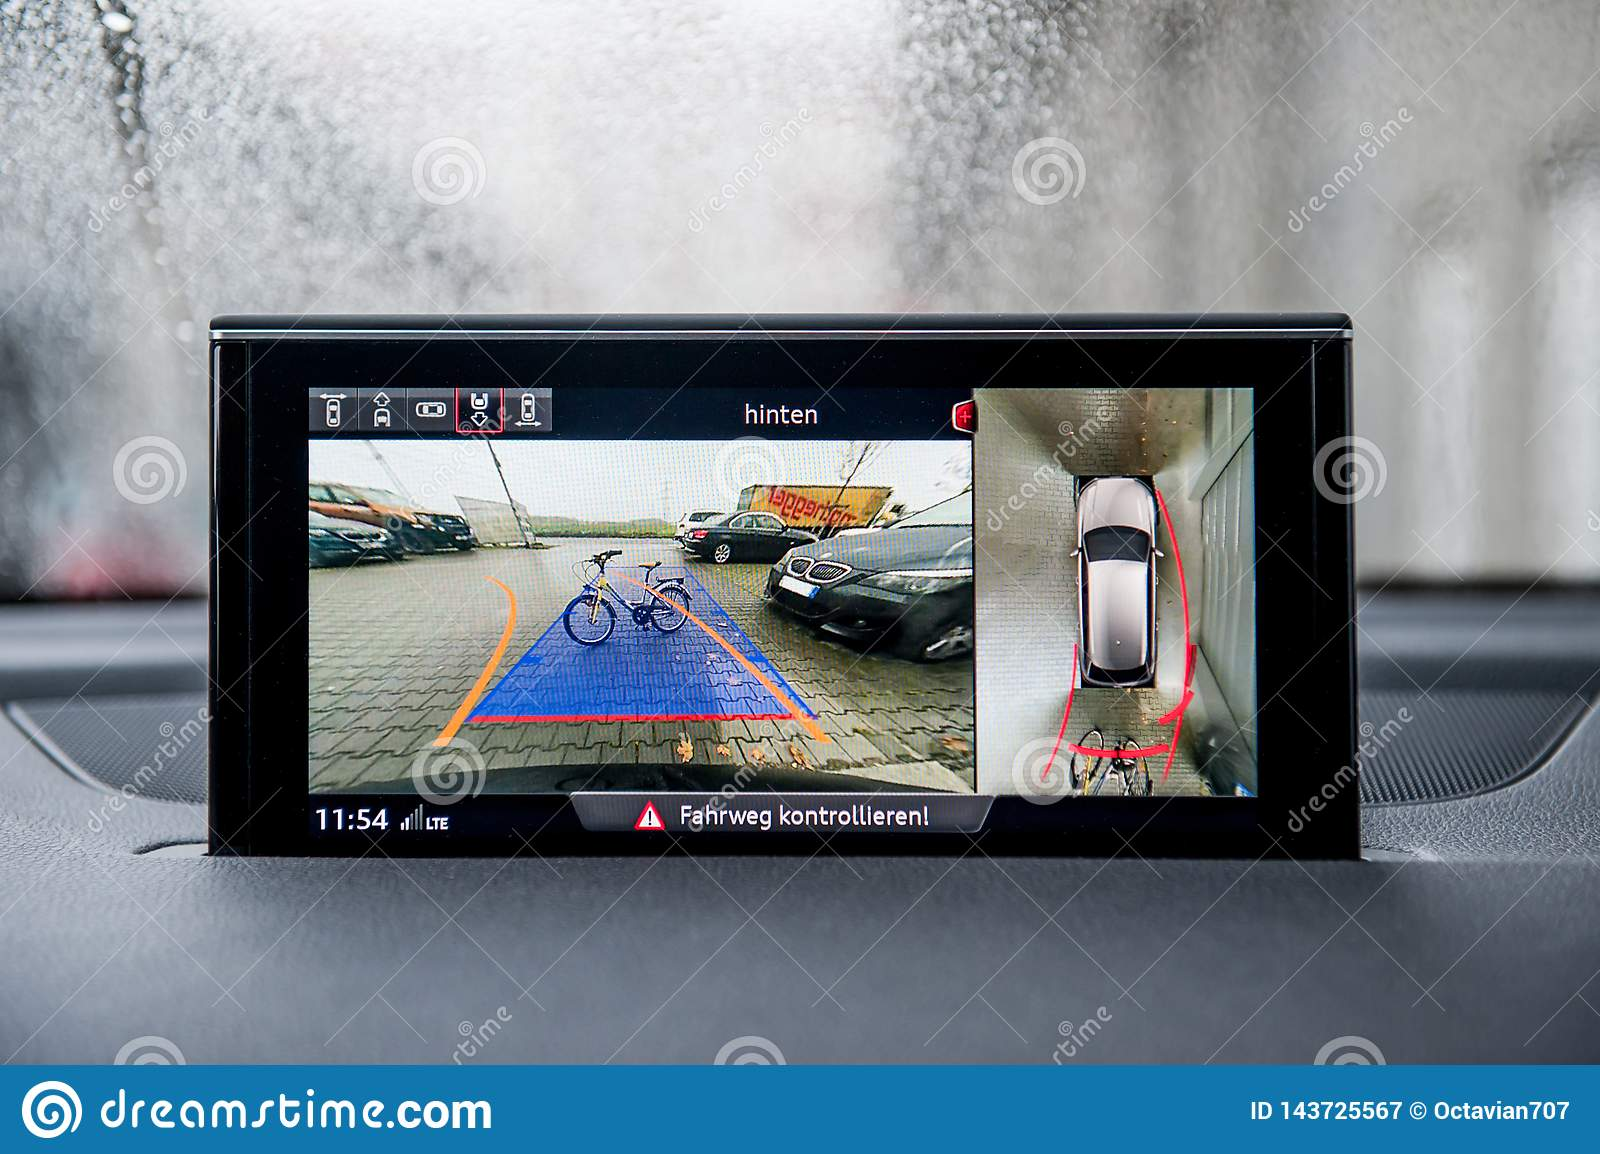 Modern backup camera monitor in car show obstacles